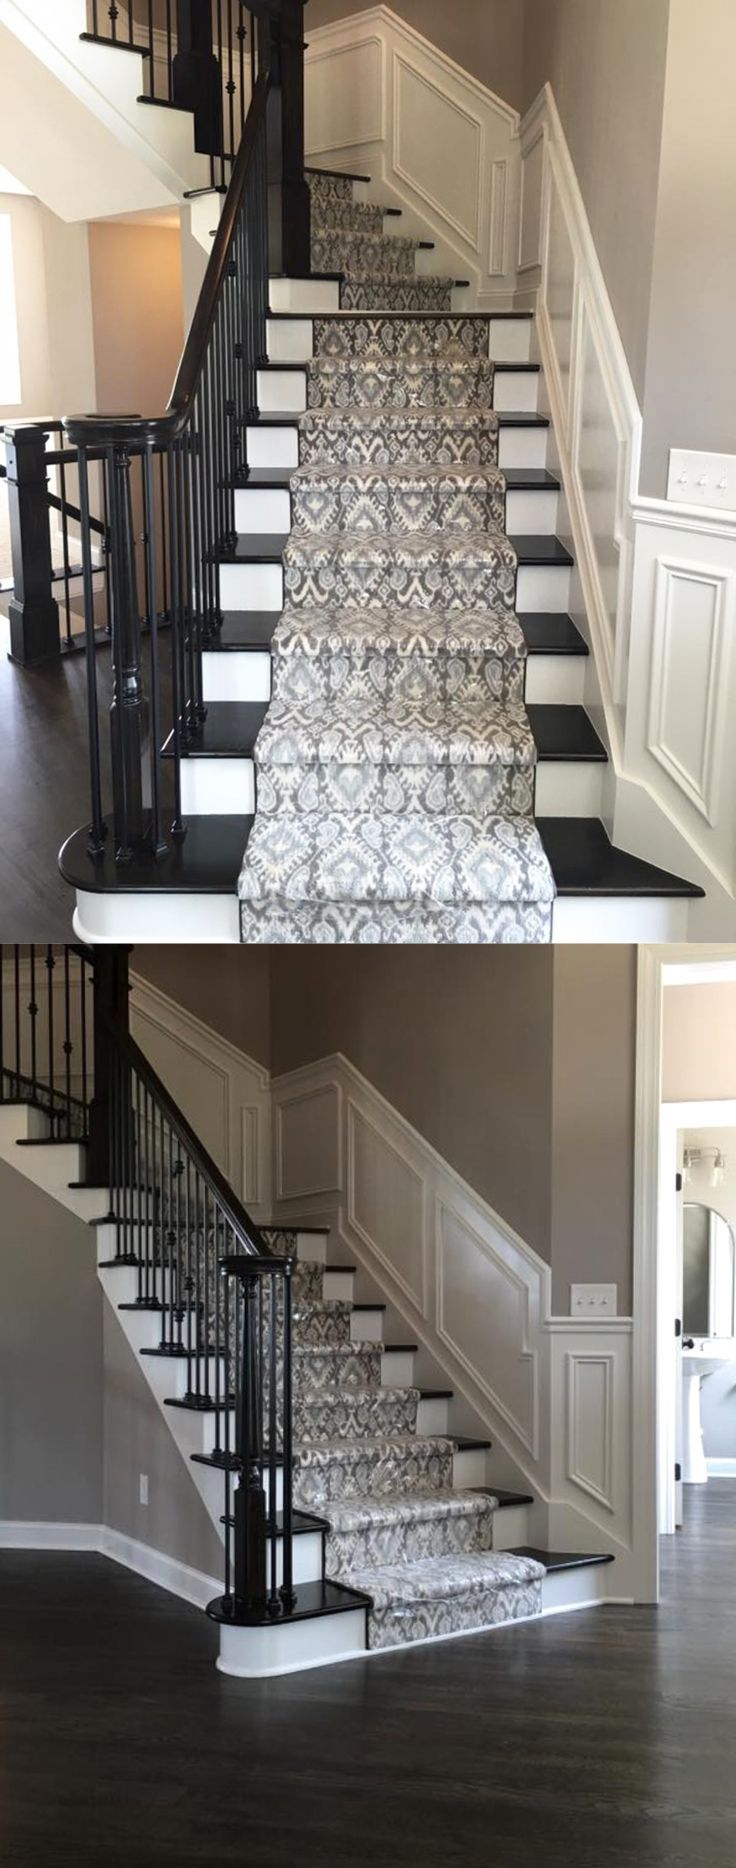 422 Best Stair Runners Images On Pinterest Sweet Home   Carpet Colors For Stairs